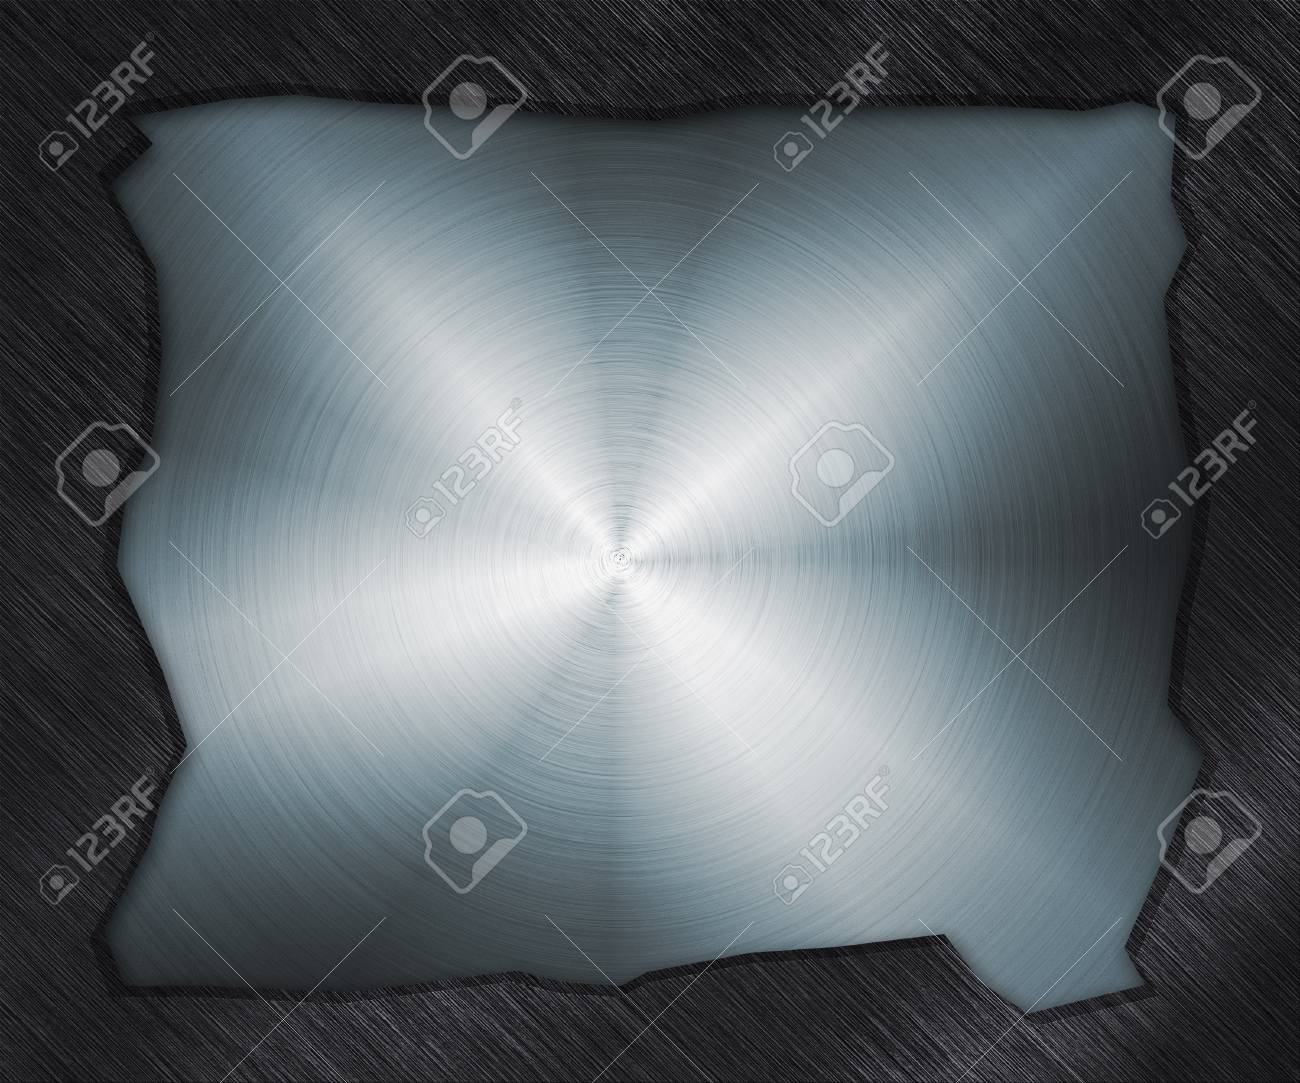 Hole in Metal Plate Stock Photo - 14043390